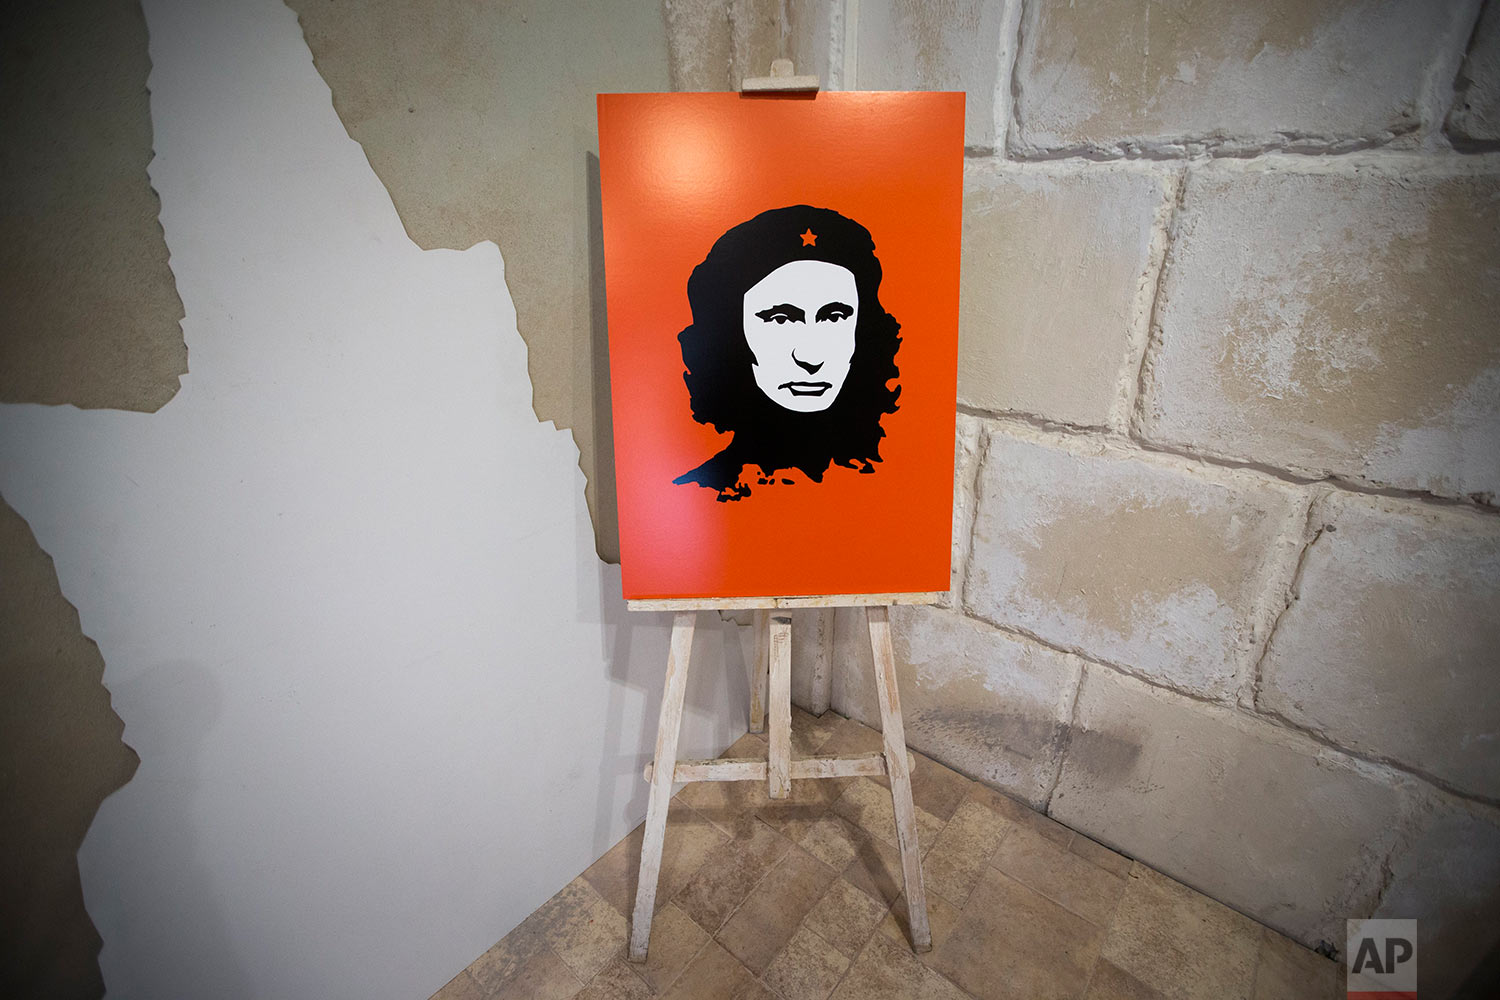 """An artwork showing Russian President Vladimir Putin as Argentine revolutionary leader Ernesto Che Guevara is displayed at the """"Putin Universe"""" exhibition in Moscow, Russia, Wednesday, Oct. 7, 2015. (AP Photo/Pavel Golovkin)"""